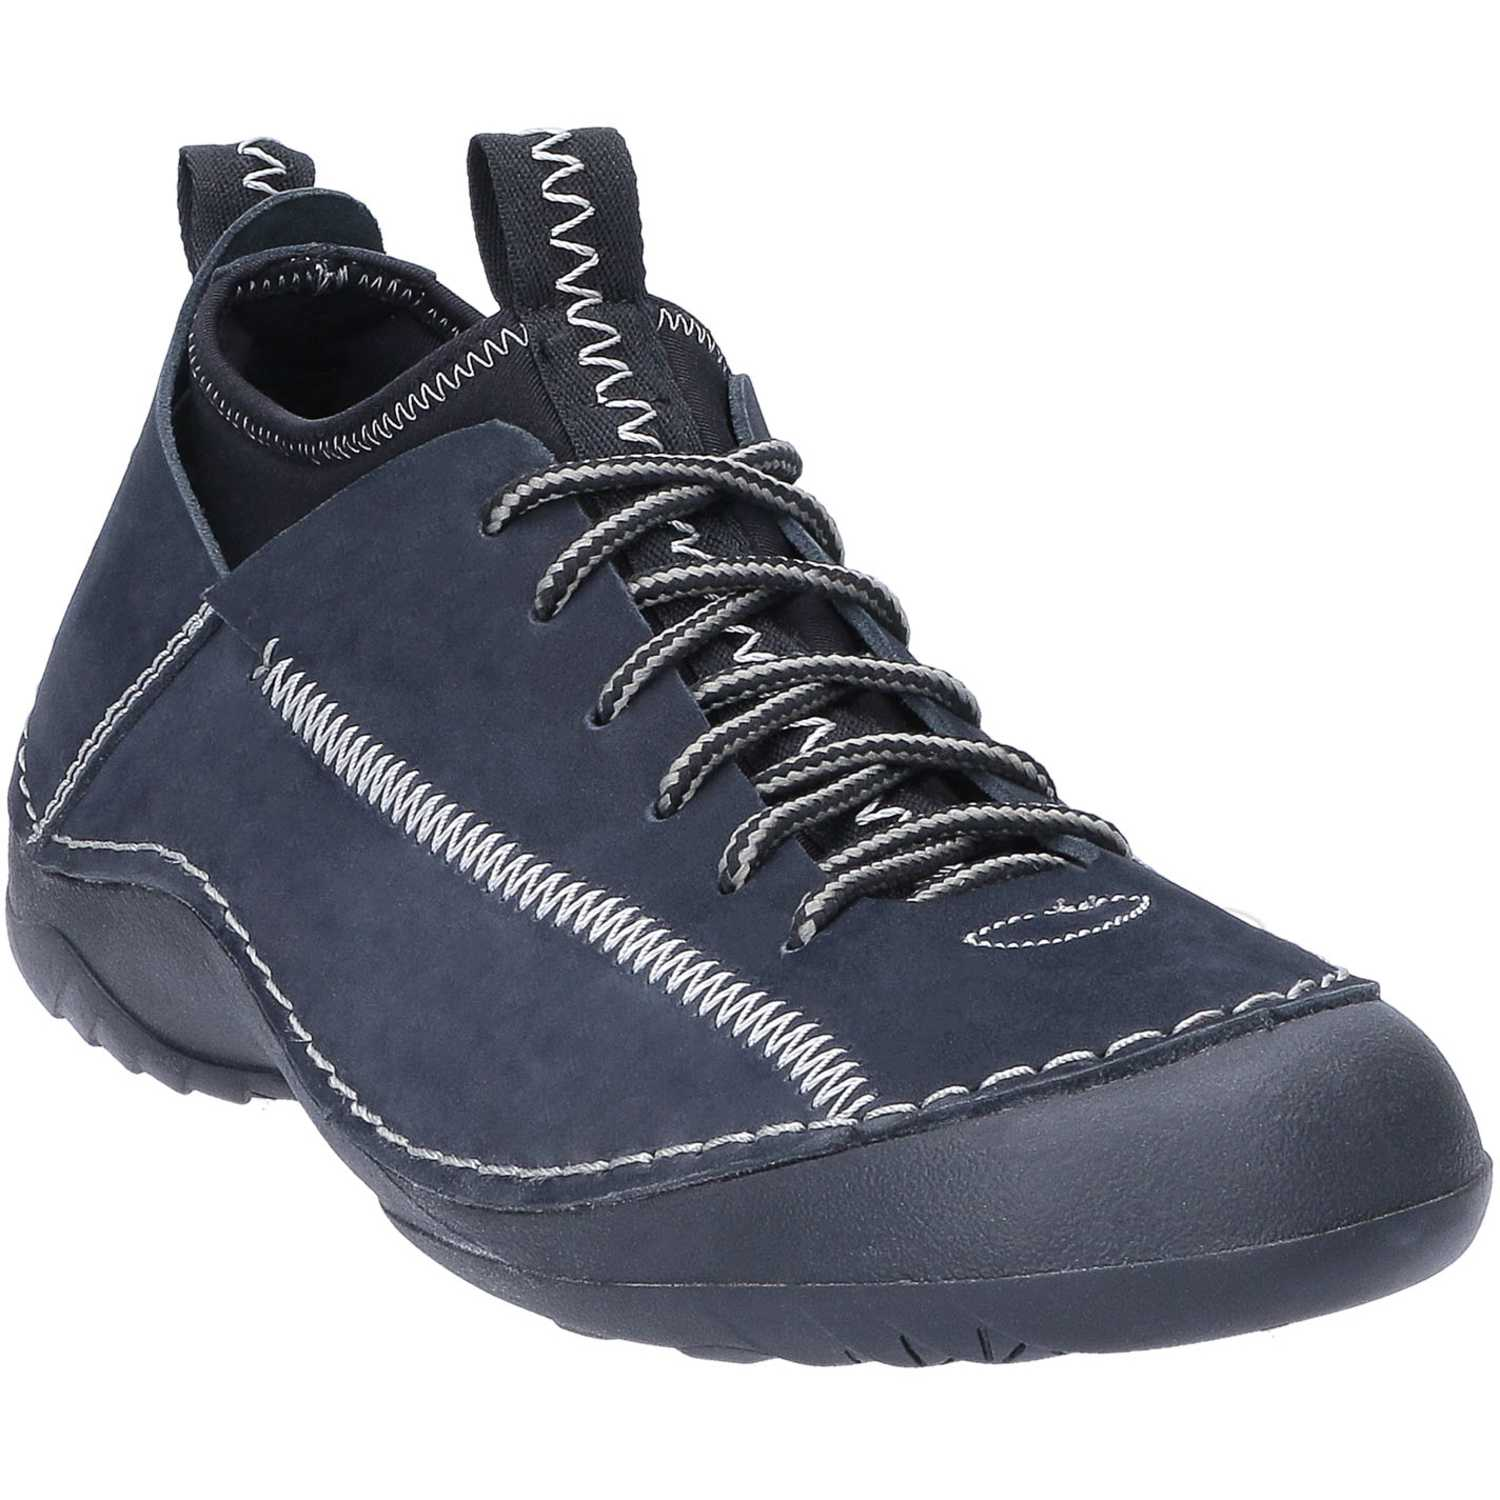 GUANTE raptor Navy Oxfords